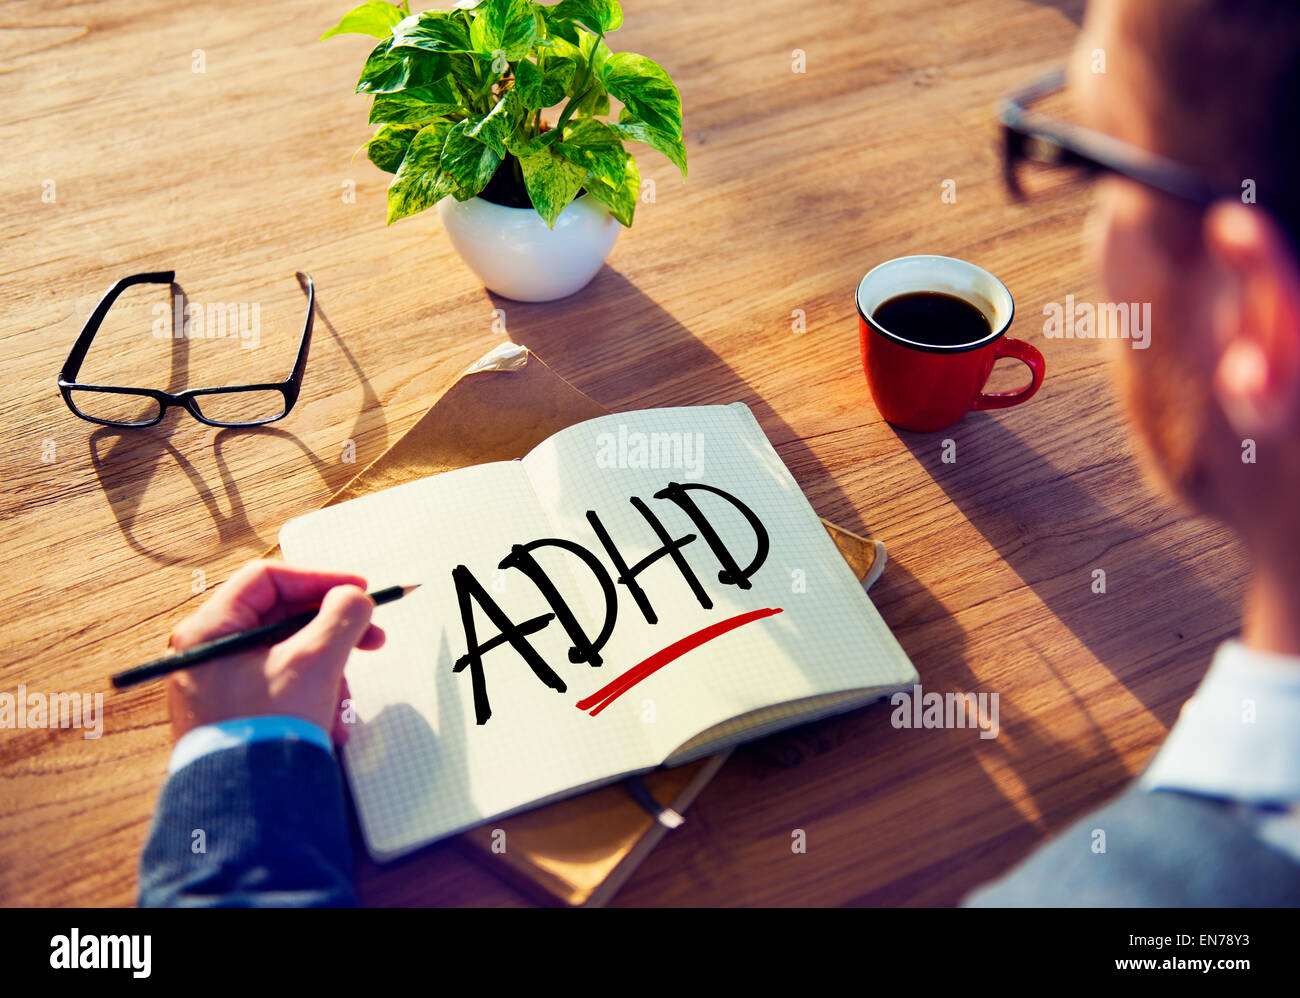 Business Man with Notepad and ADHD Concepts - Stock Image